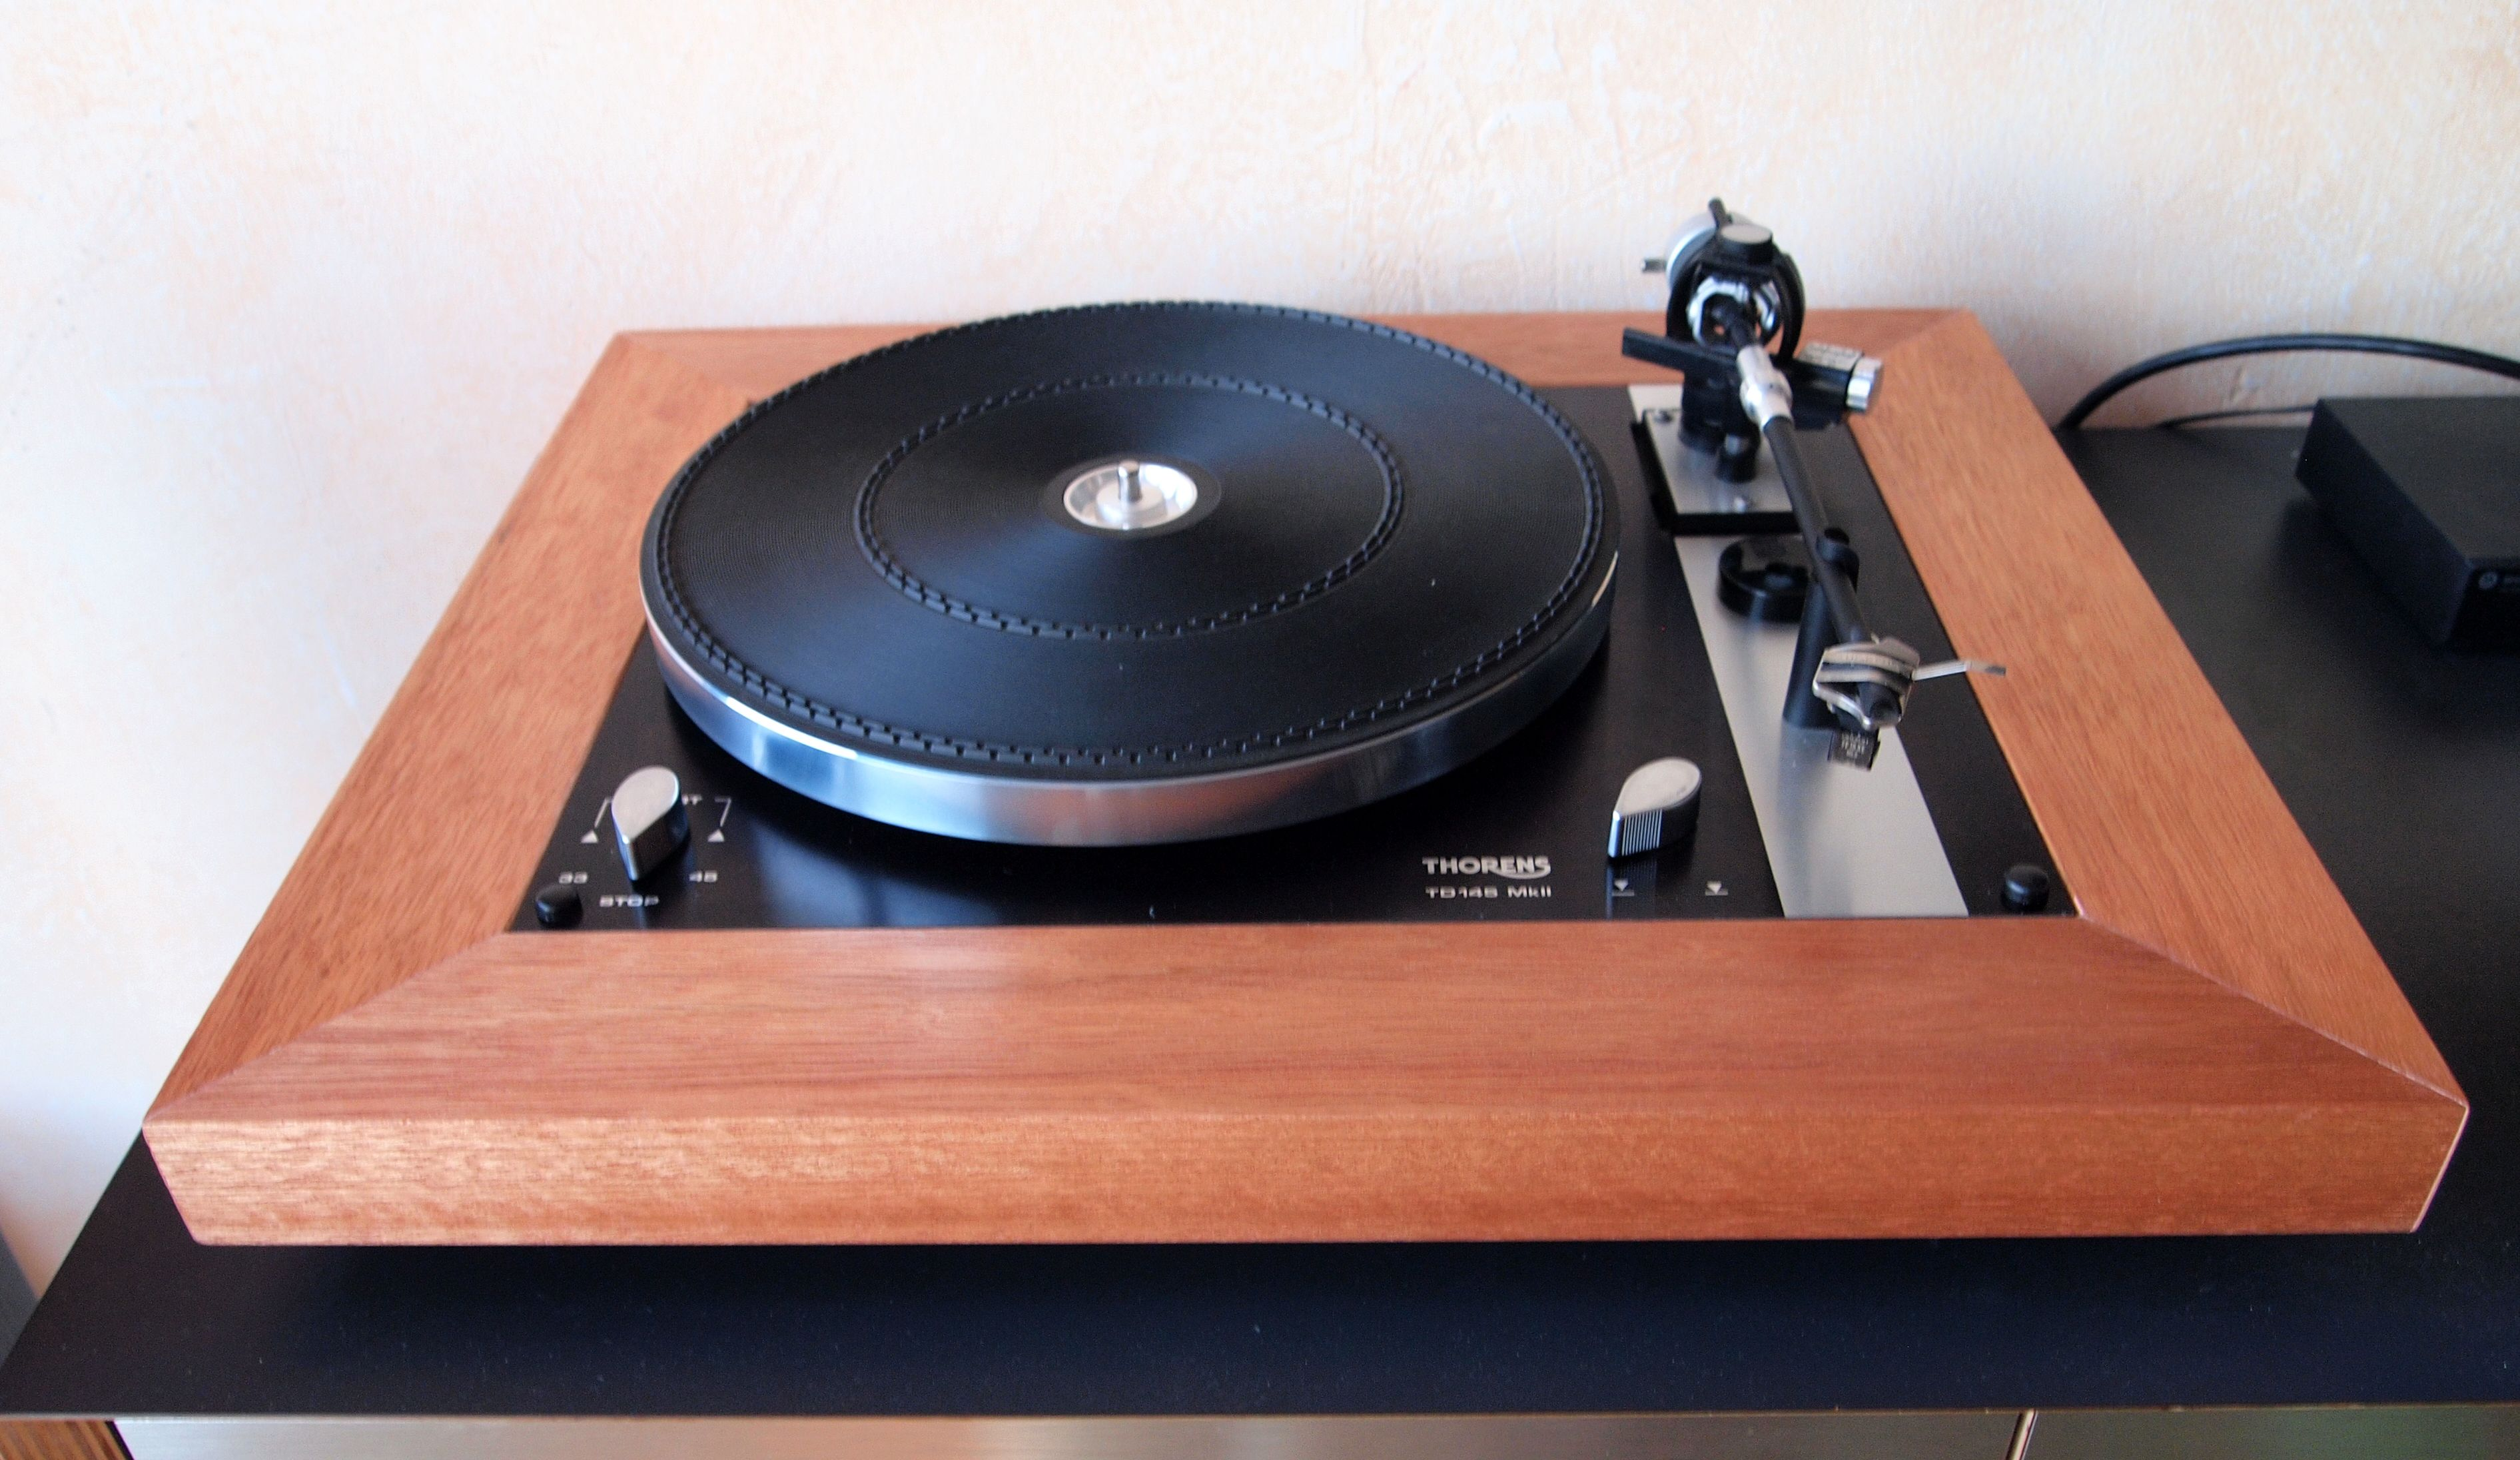 plinth for thorens td 145 mk ii made by anderson in hout plinthe